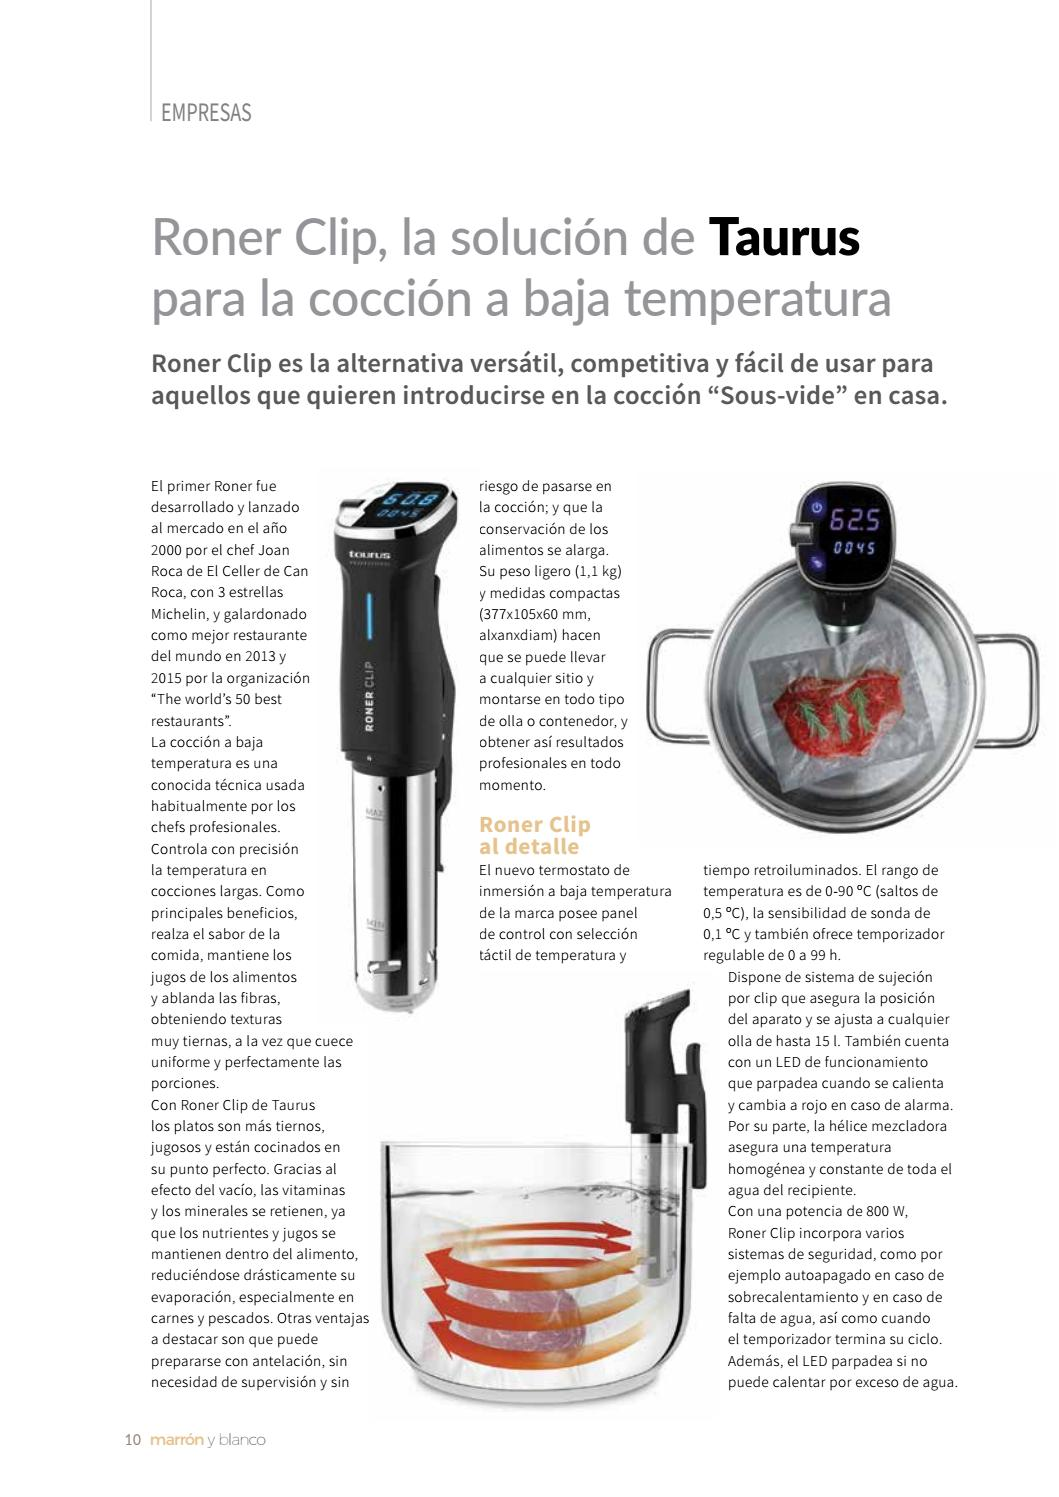 Marr n y blanco 415 by marr n y blanco issuu for Cocina a baja temperatura joan roca